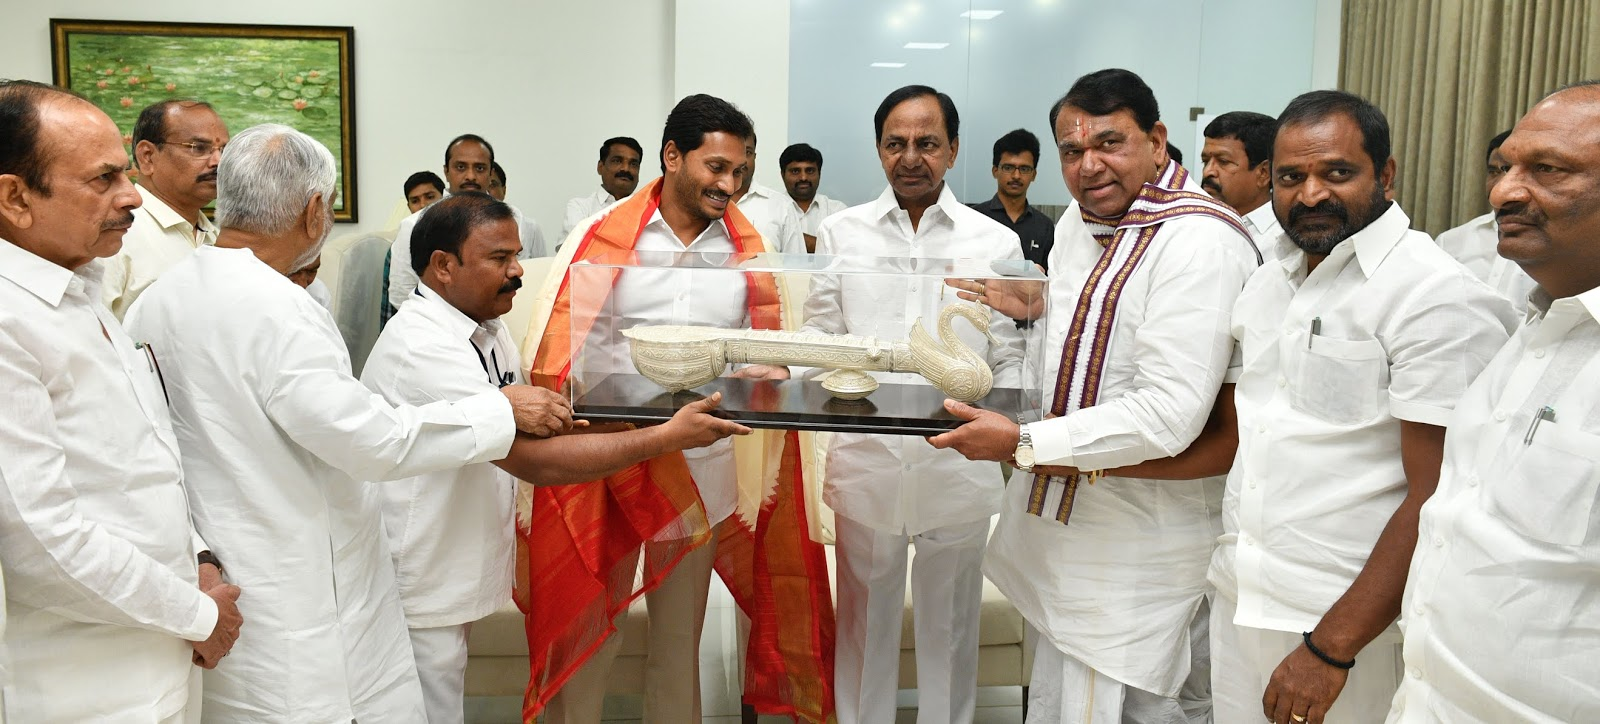 Newly elected Chief Minister of AP Jagan Mohan Reddy called